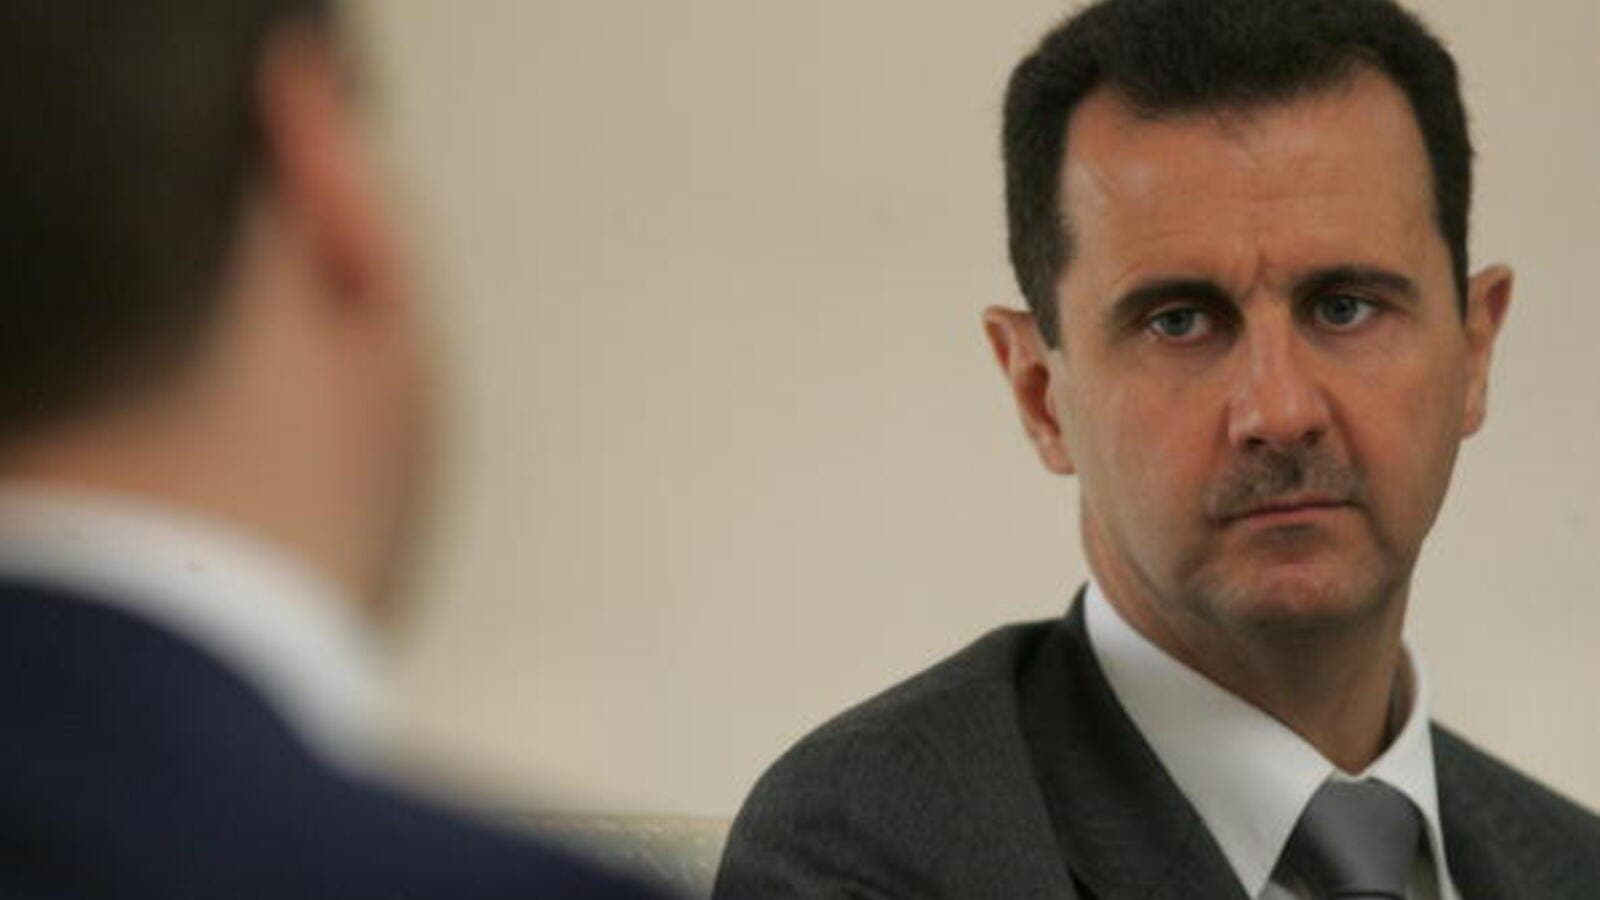 Syria has rejected the exclusion of Syrian President Bashar al-Assad from political transition in the country. [Getty Images/Sasha Mordovets]